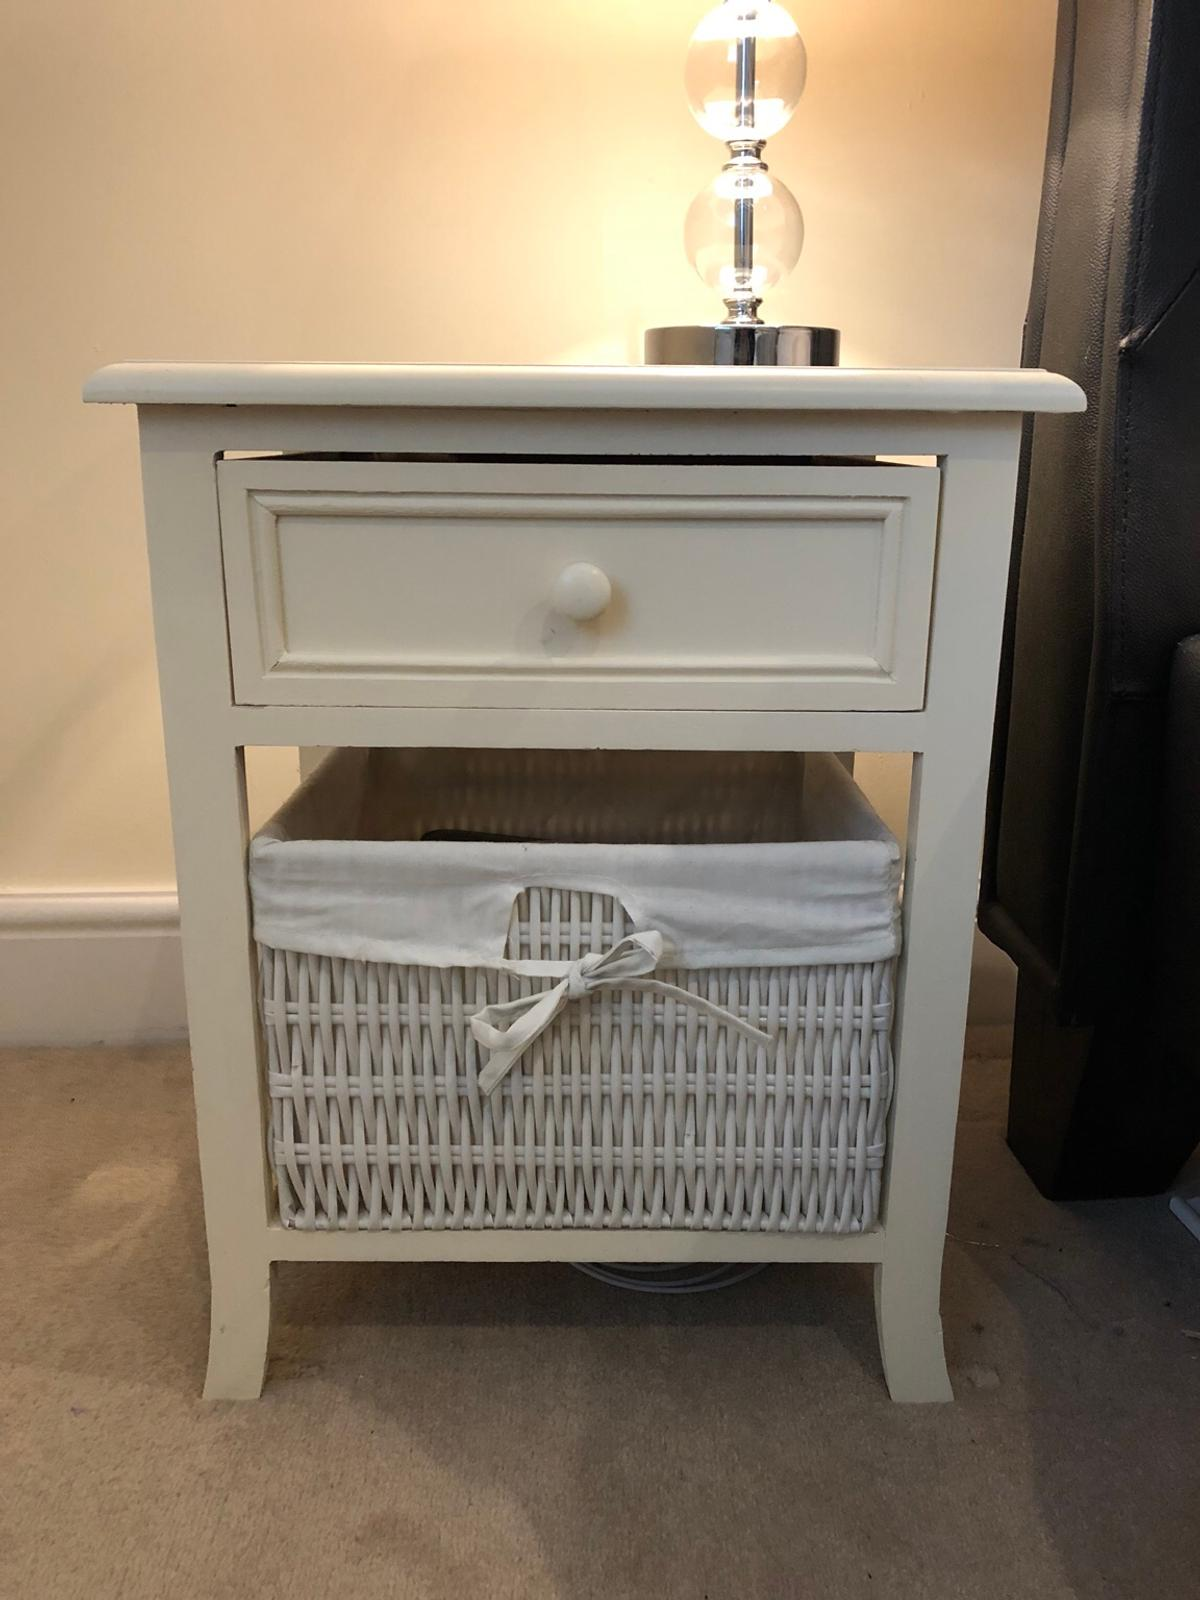 Cream Bedside Tables: Bedside Table In NW1 Westminster For £15.00 For Sale